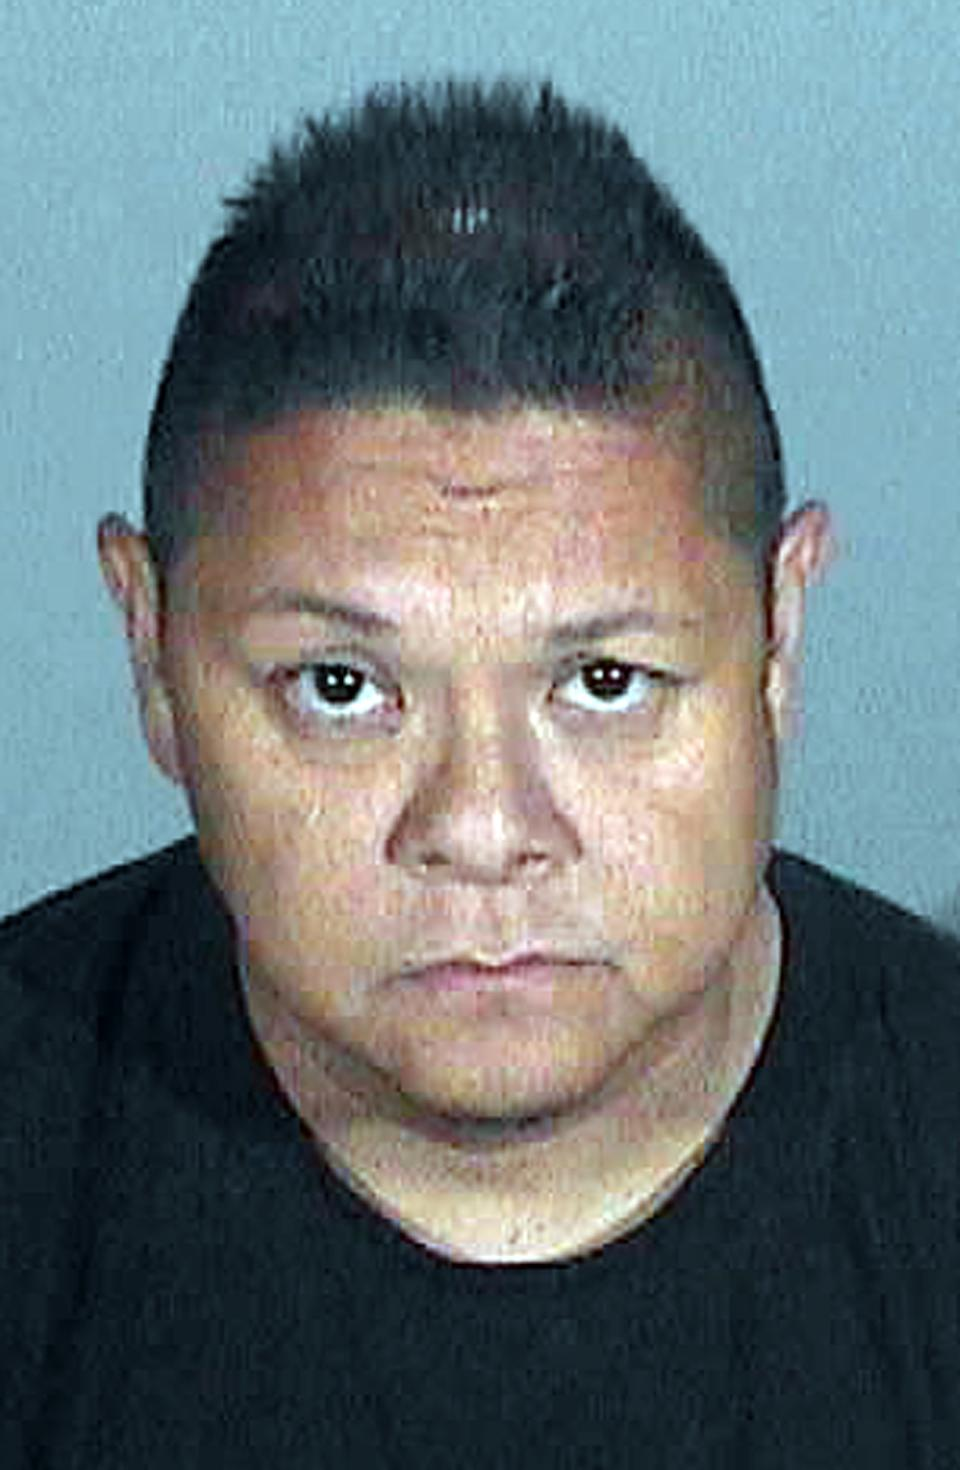 This photo provided by the Santa Monica Police Department shows suspect Jay Nieto who was arrested Sept. 26, 2012 in Santa Monica, Calif., on suspicion of stealing paintings from the home of a Santa Monica financier. (AP Photo/Santa Monica Police Dept.)